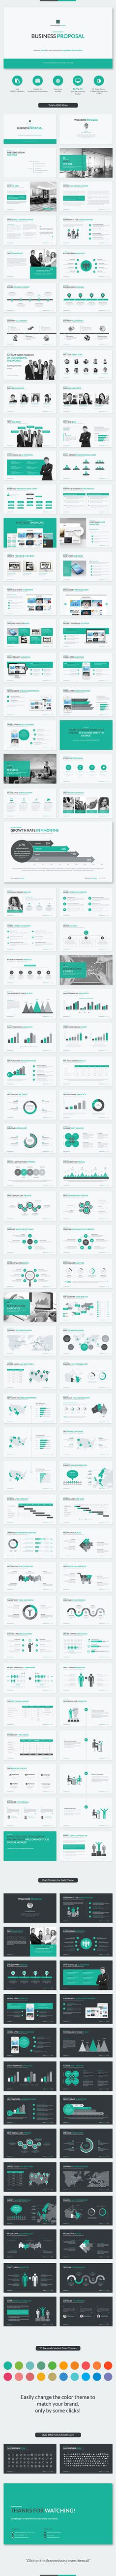 Pueden cambiarse los colores Business Proposal Google Slides Template - Google Slides Presentation Templates